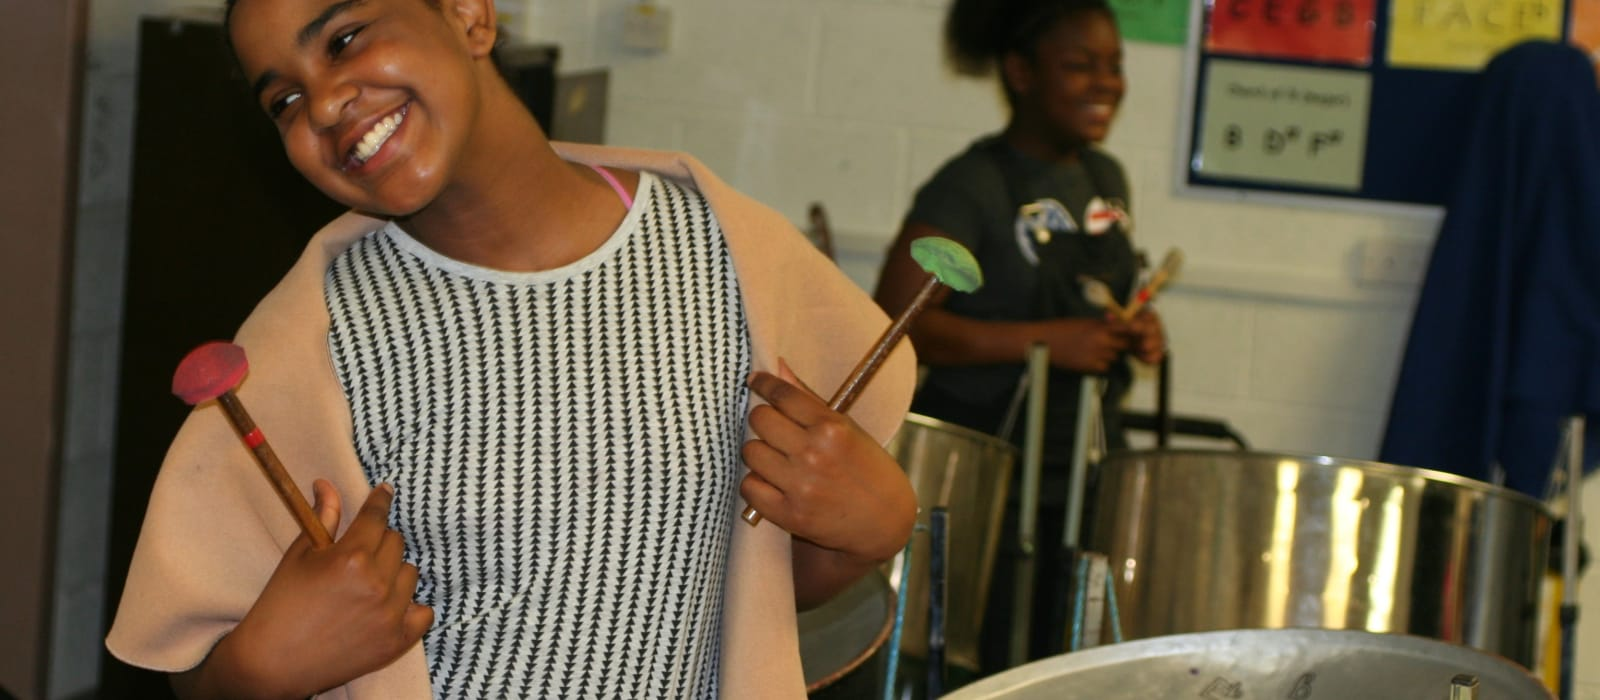 A young girl stands in front of a steel pan smiling